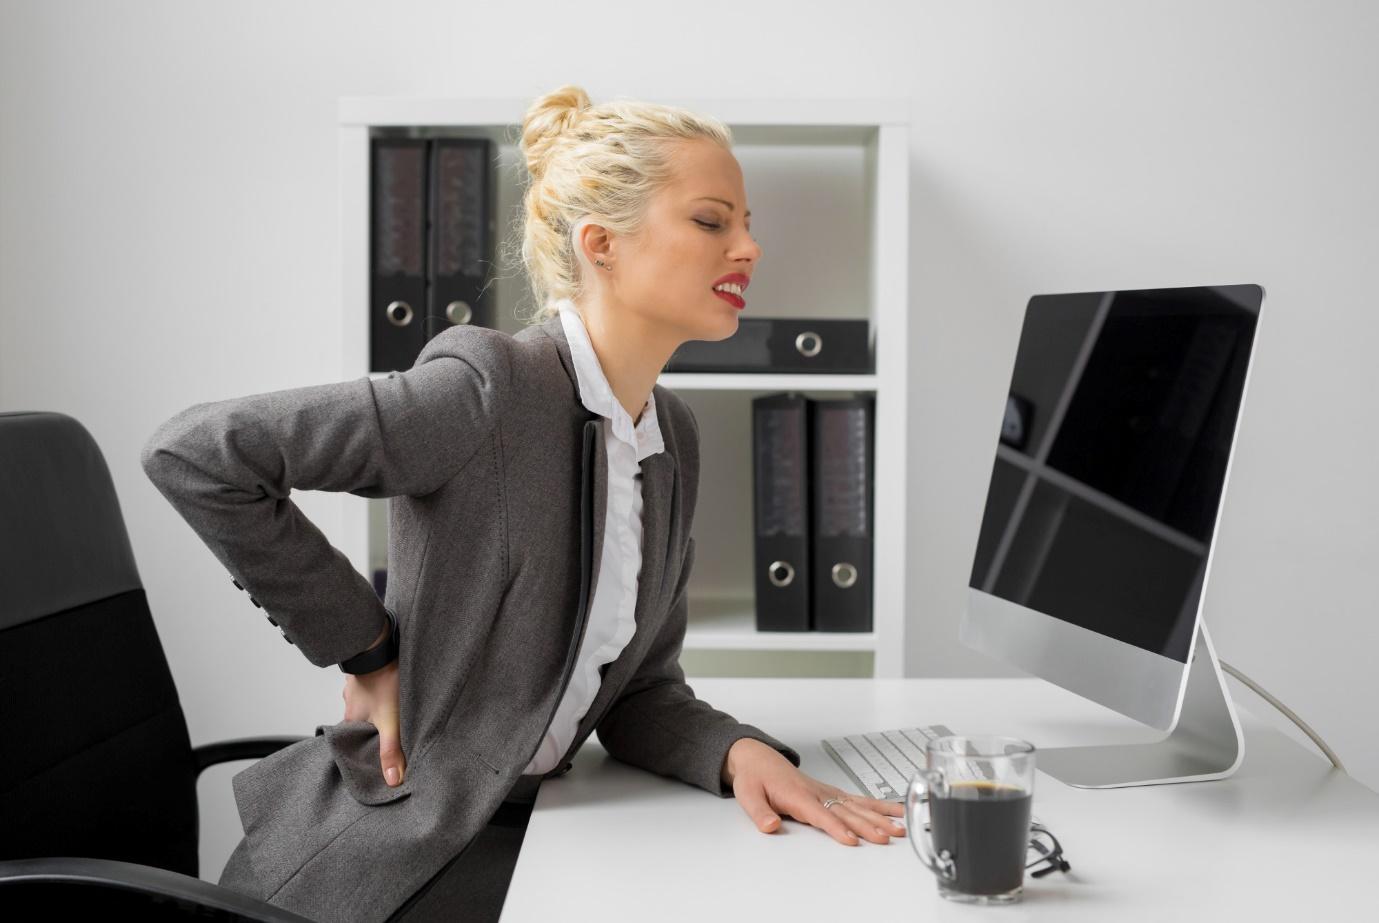 What Is an Ergonomic Chair? 5 Key Features